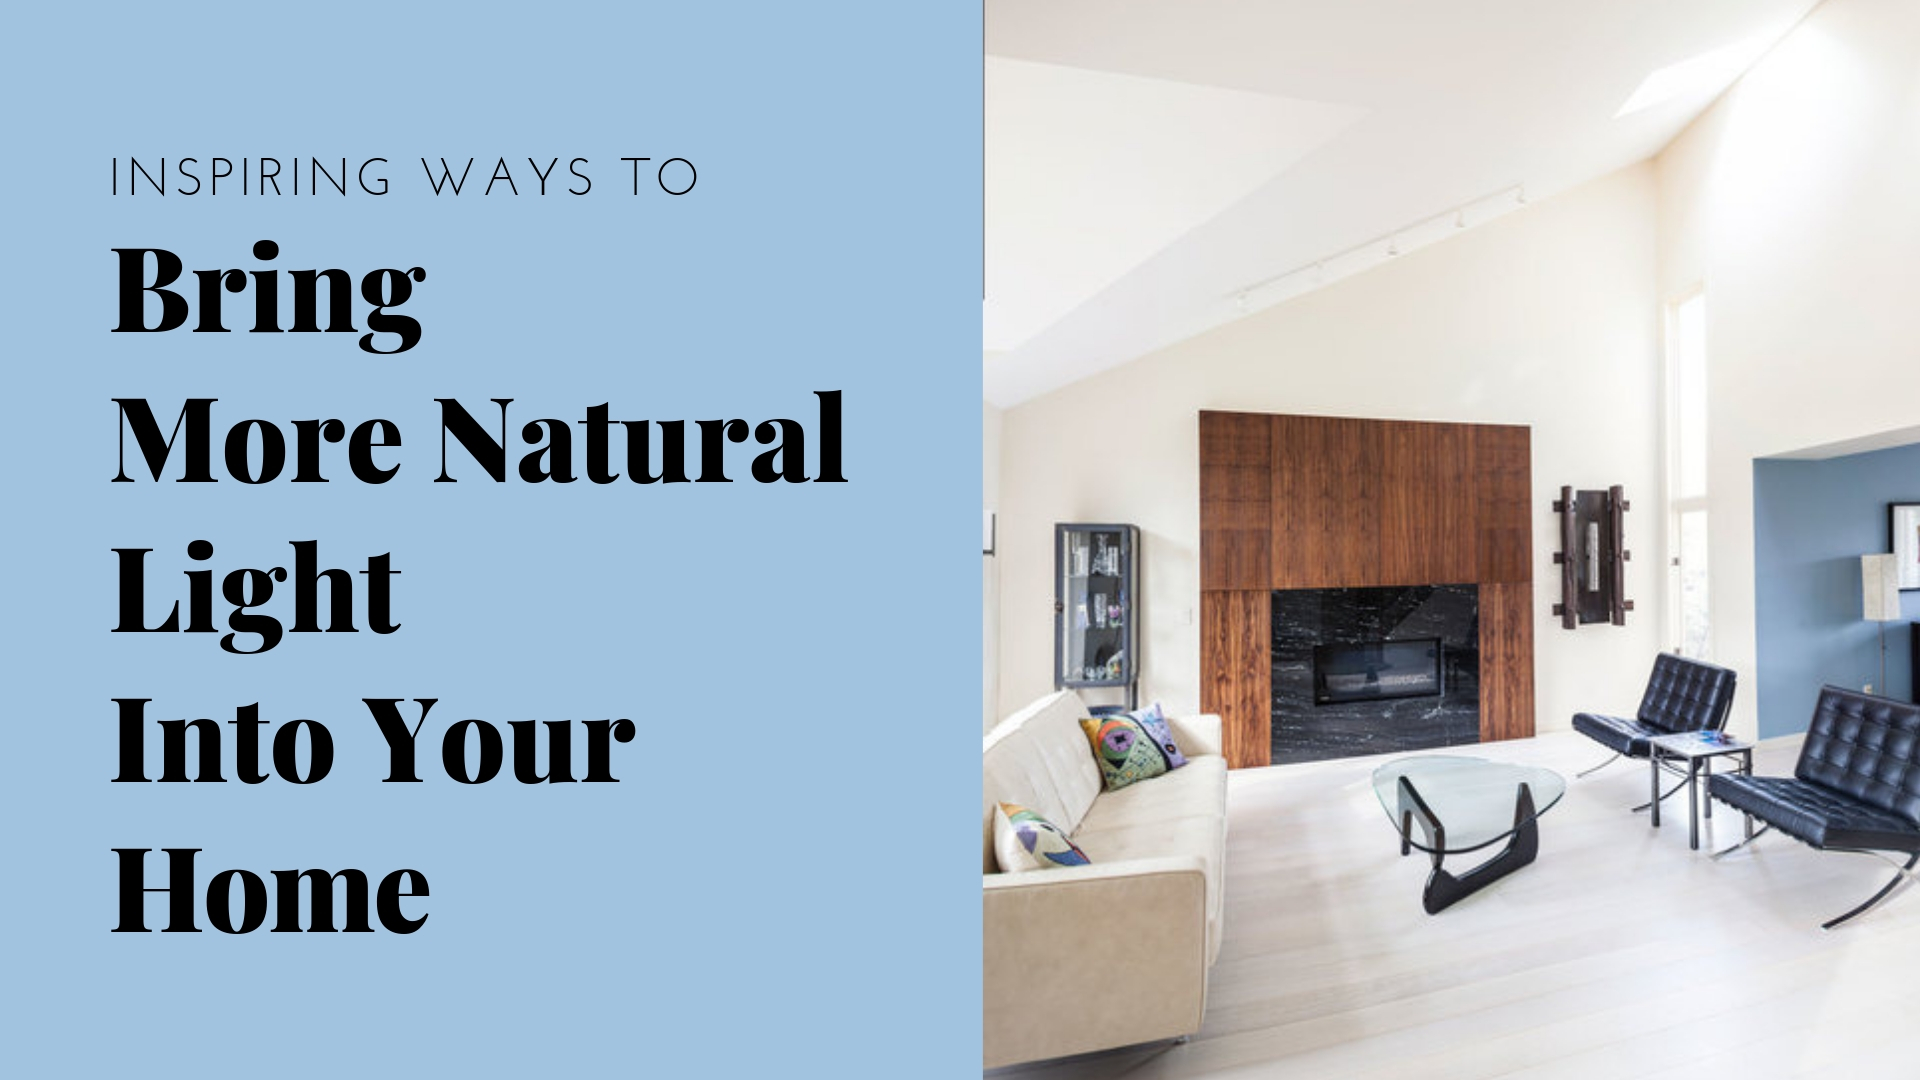 How-to-bring-more-natural-light-into-your-home-ann-arbor.jpg